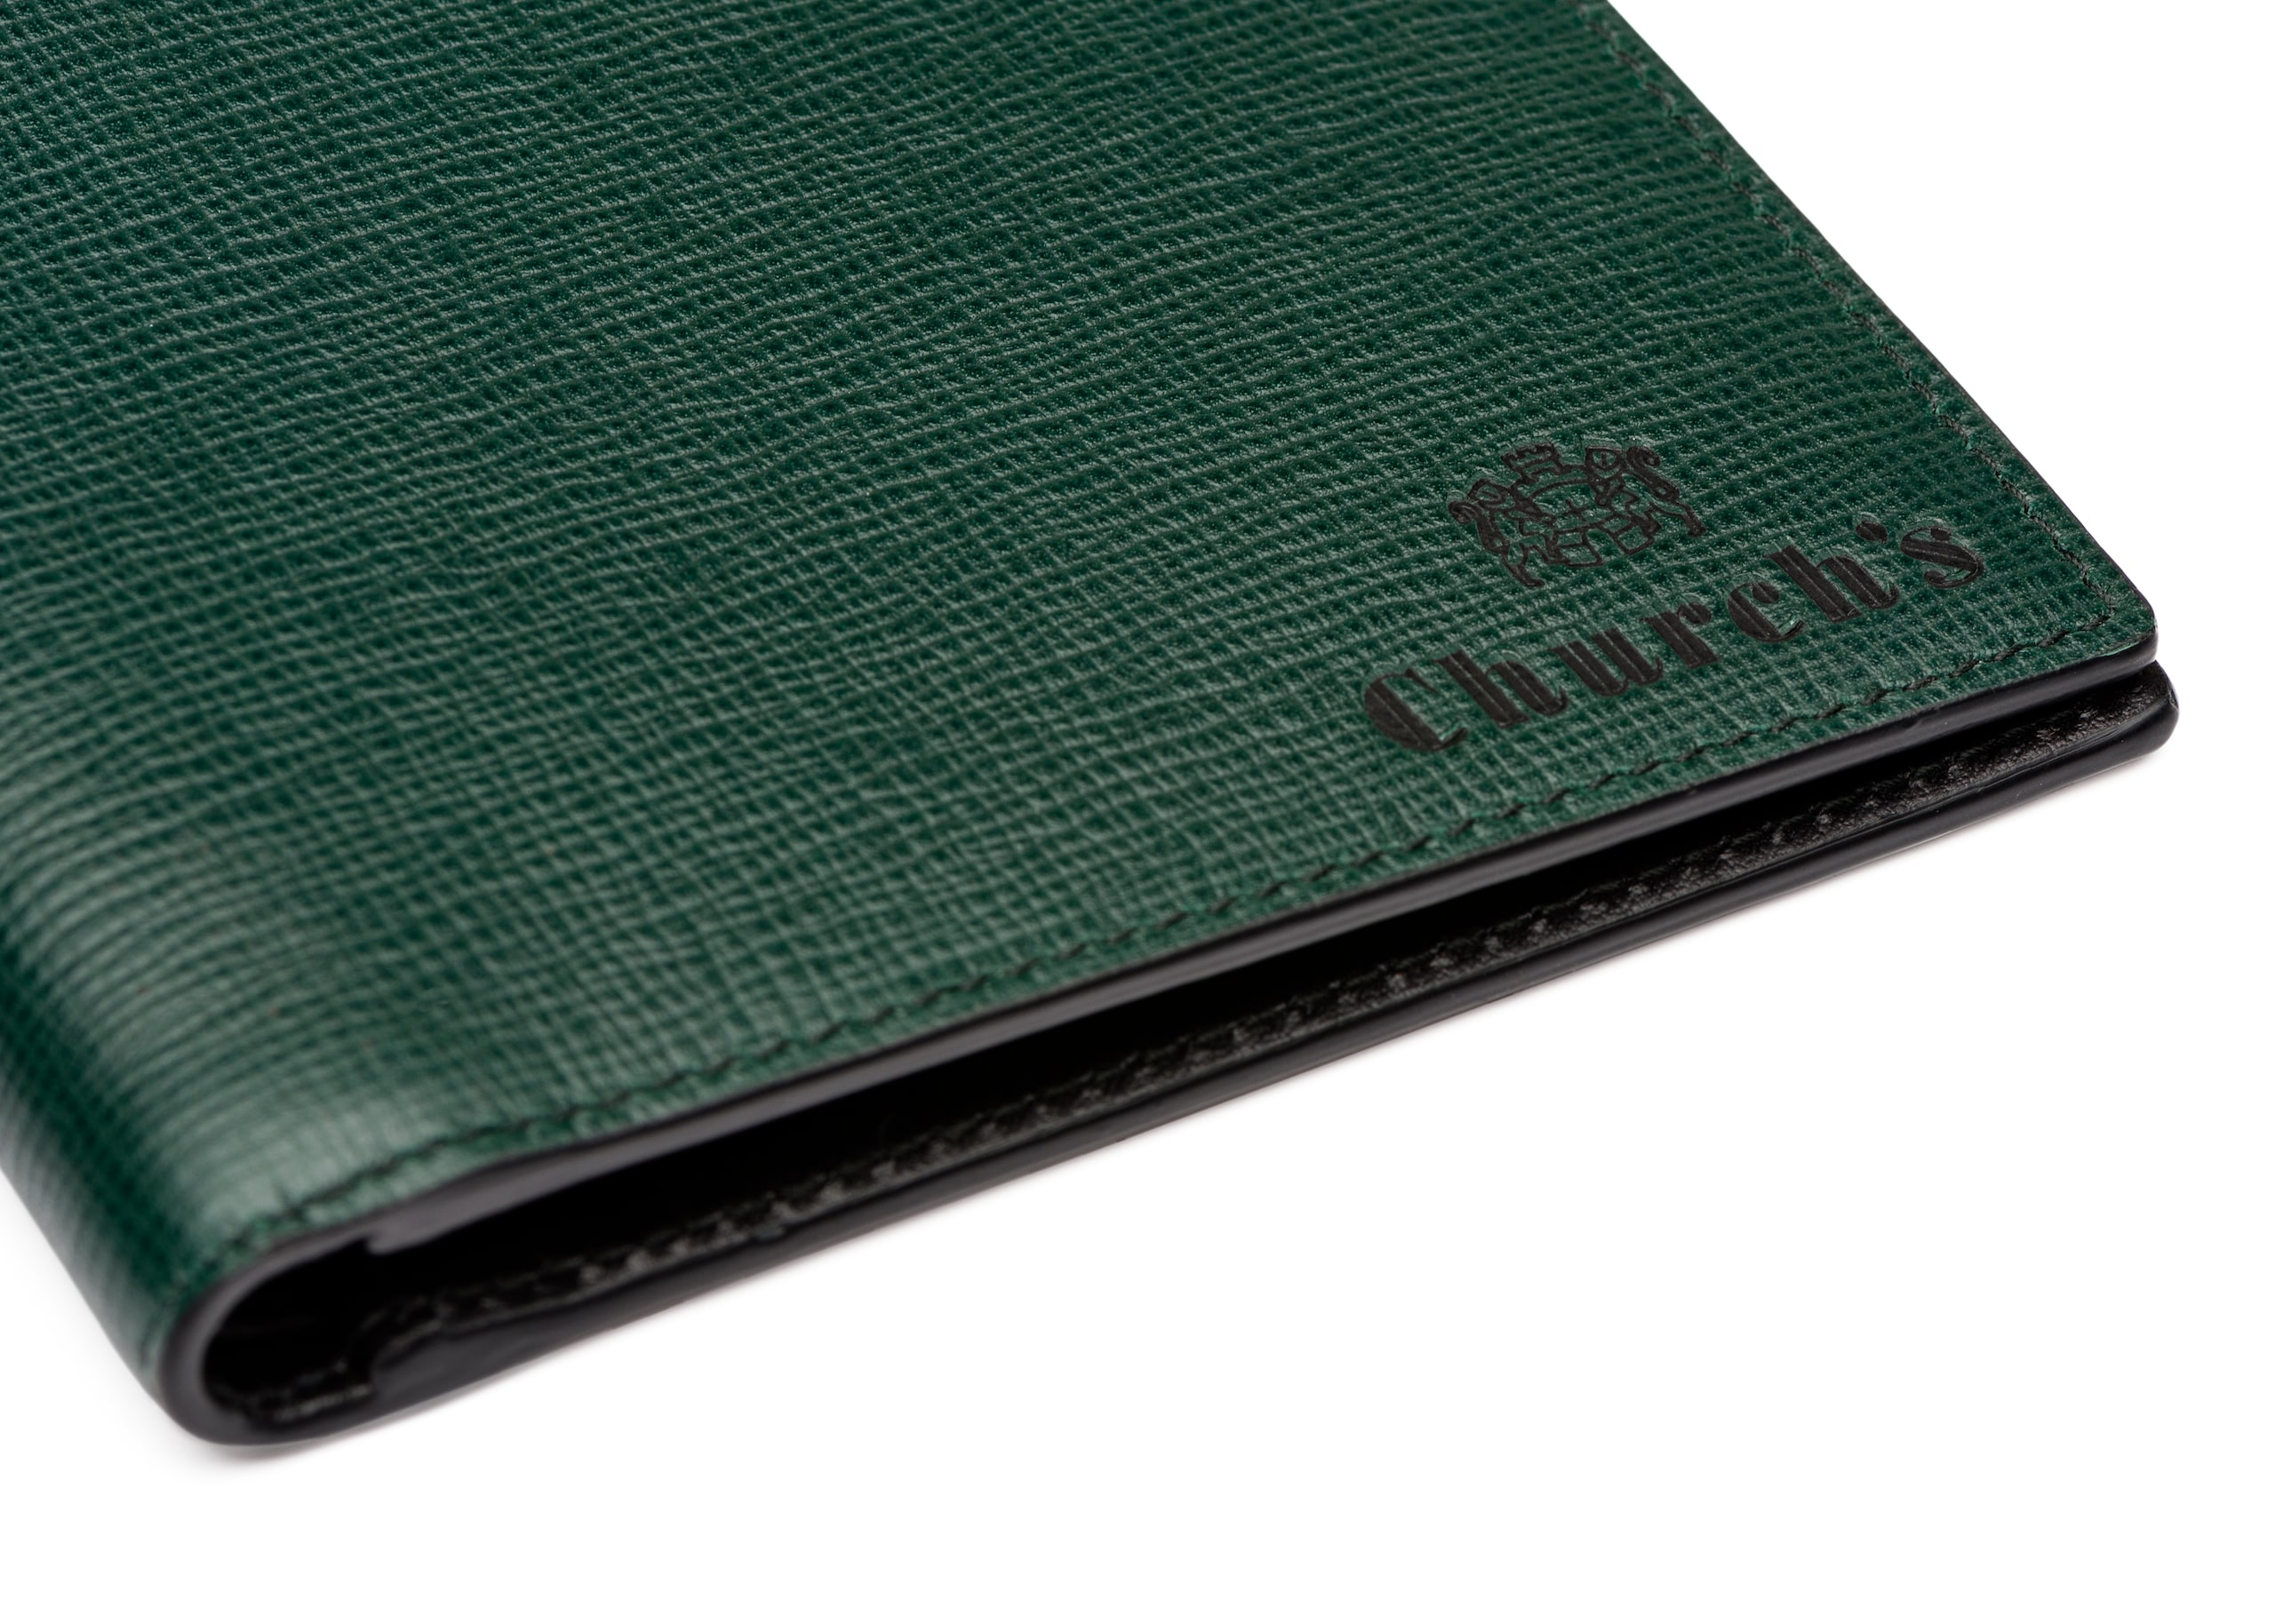 Billfold wallet Church's Portefeuille 8 cartes en cuir St. James Vert